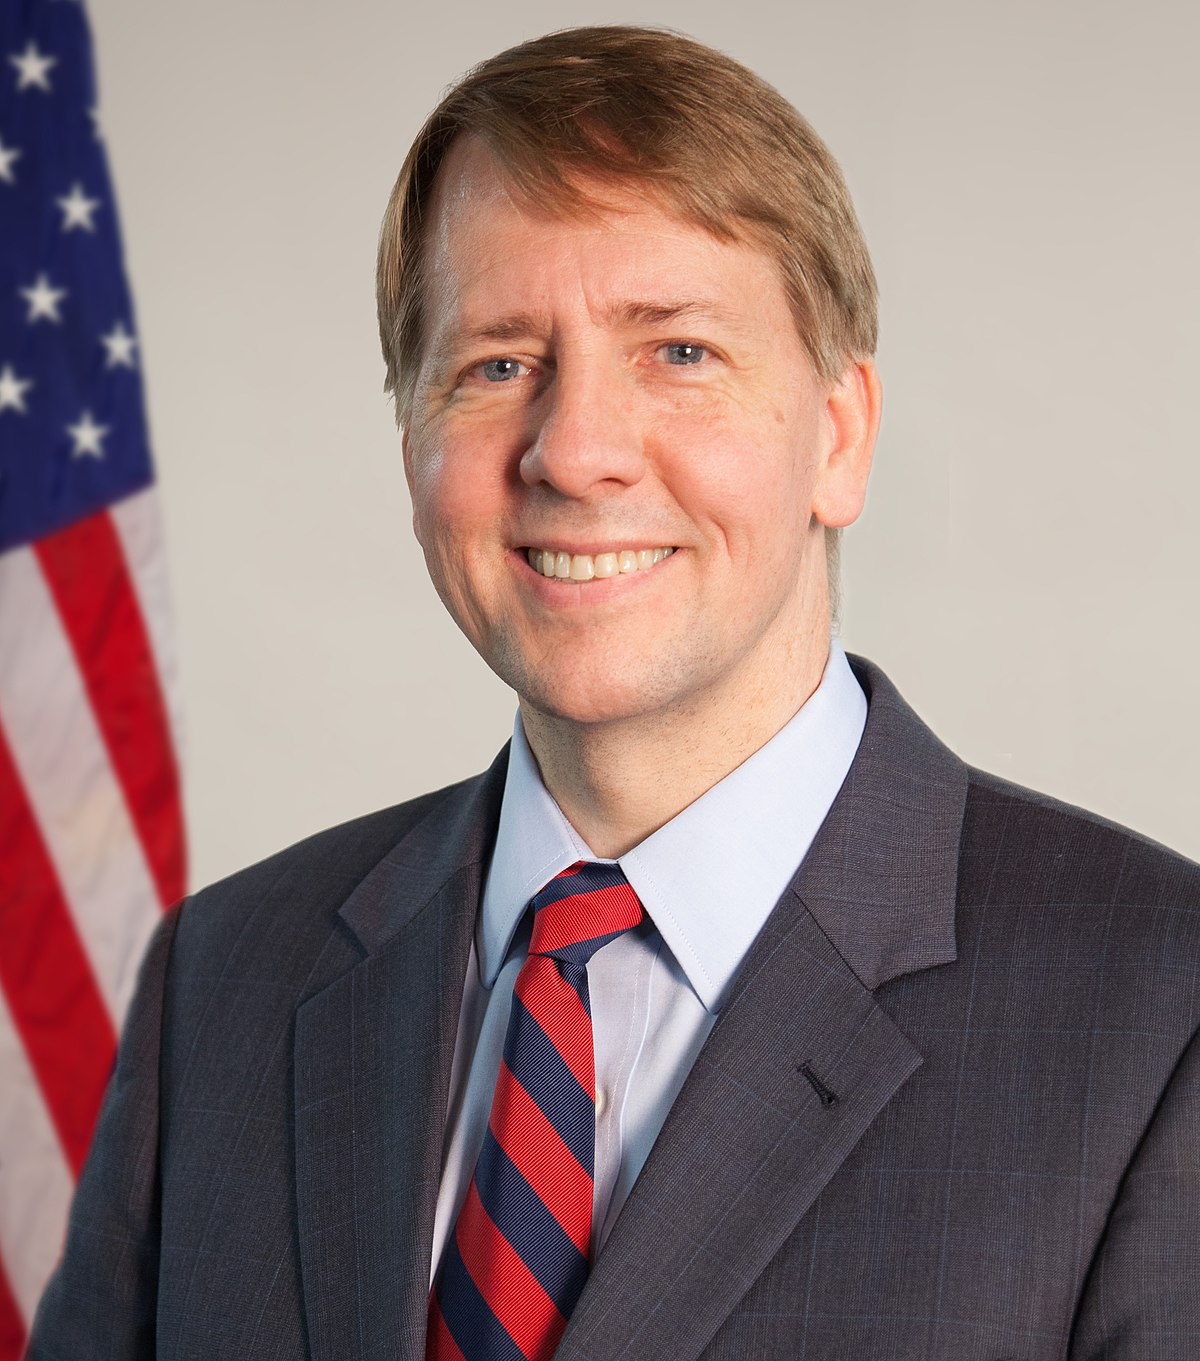 ce9fb4bef18 Richard Cordray - Wikipedia